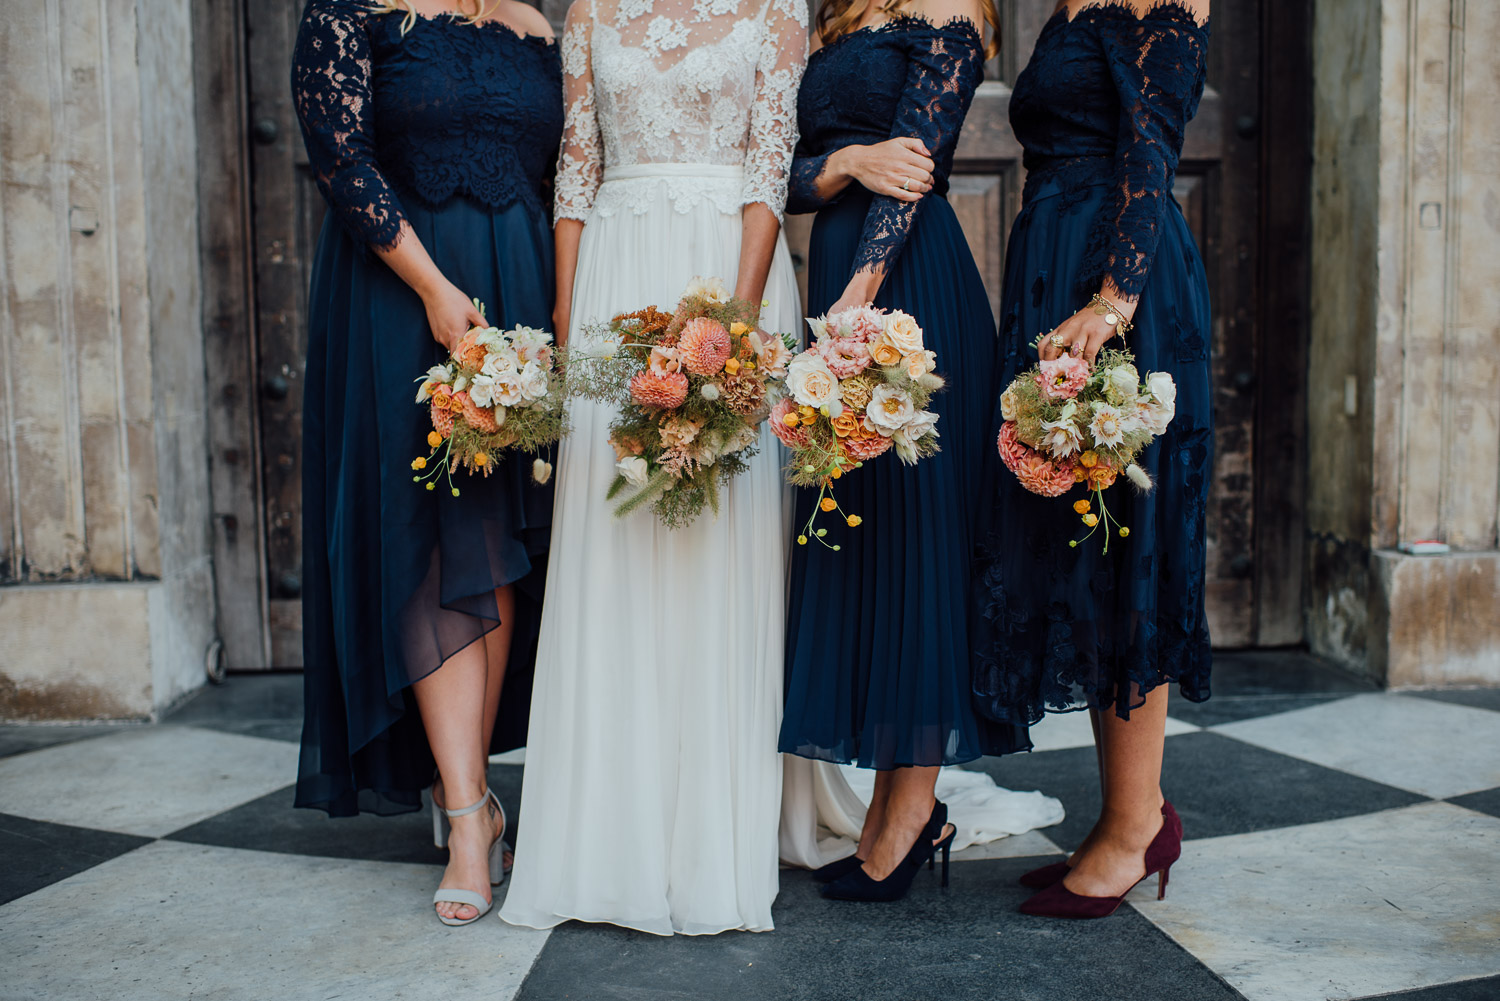 east london wedding flowers wilton's music hall wedding by london wedding photographer the shannons photography